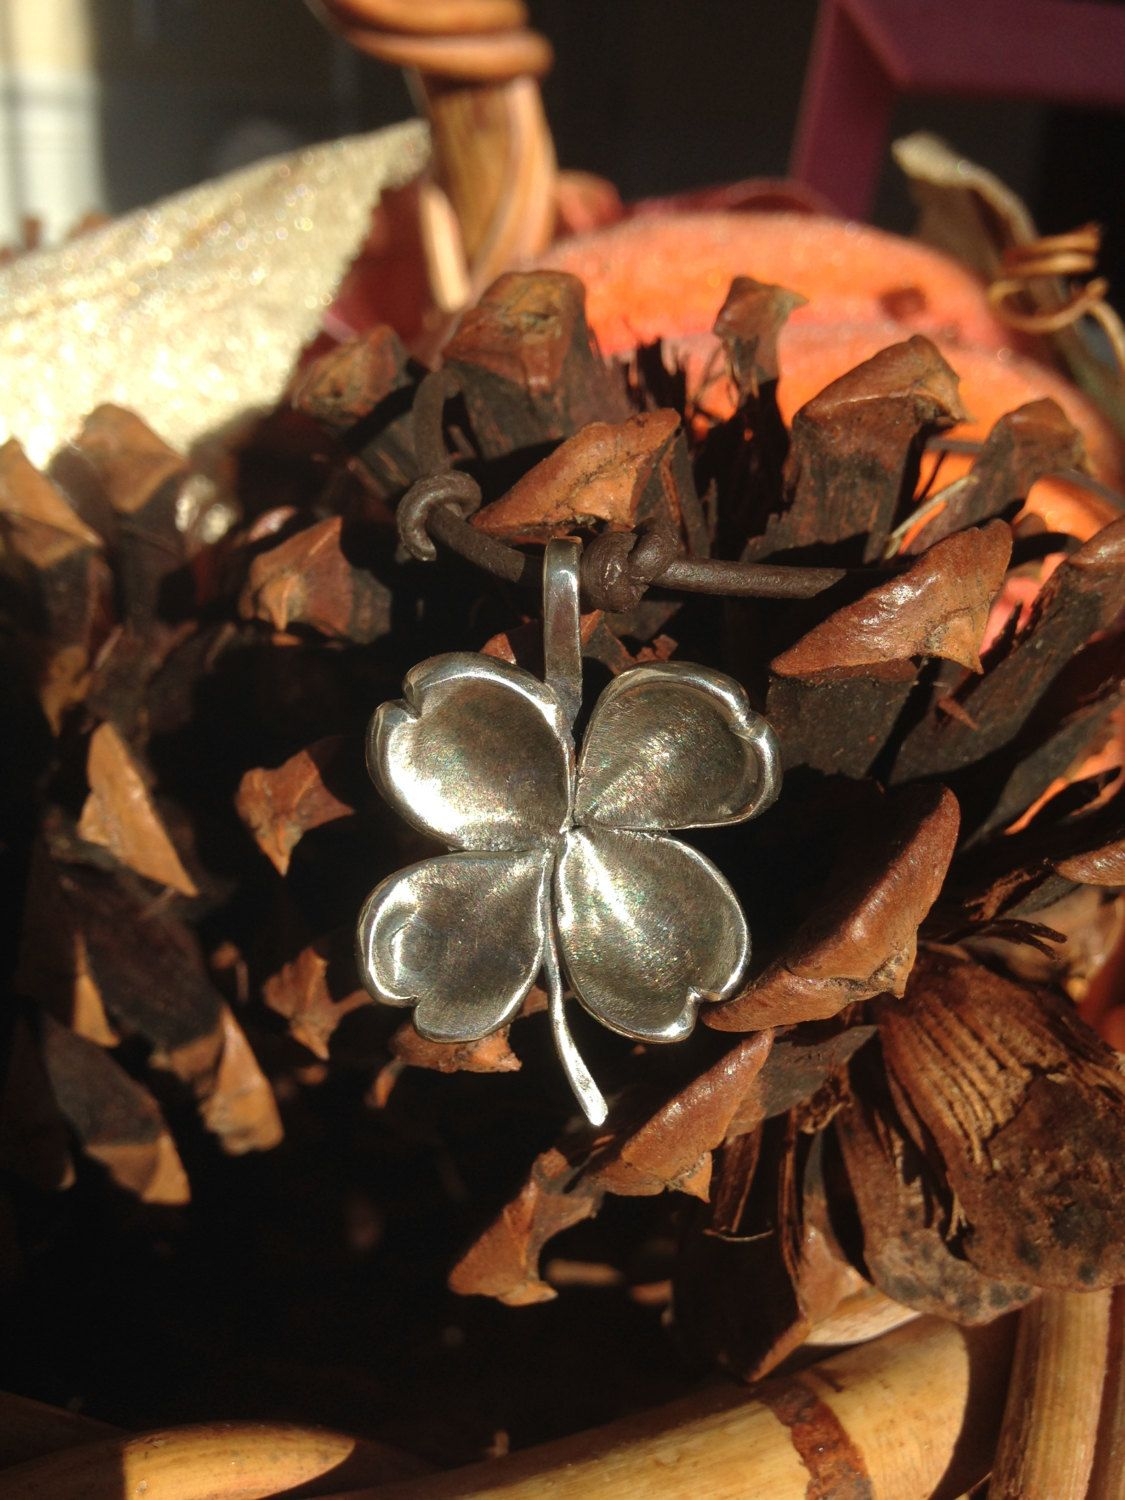 Sterling Silver Shamrock/ Four Leaf Clover Necklace with Leather Cord by CopperfoxGemsJewelry on Etsy https://www.etsy.com/listing/208315623/sterling-silver-shamrock-four-leaf